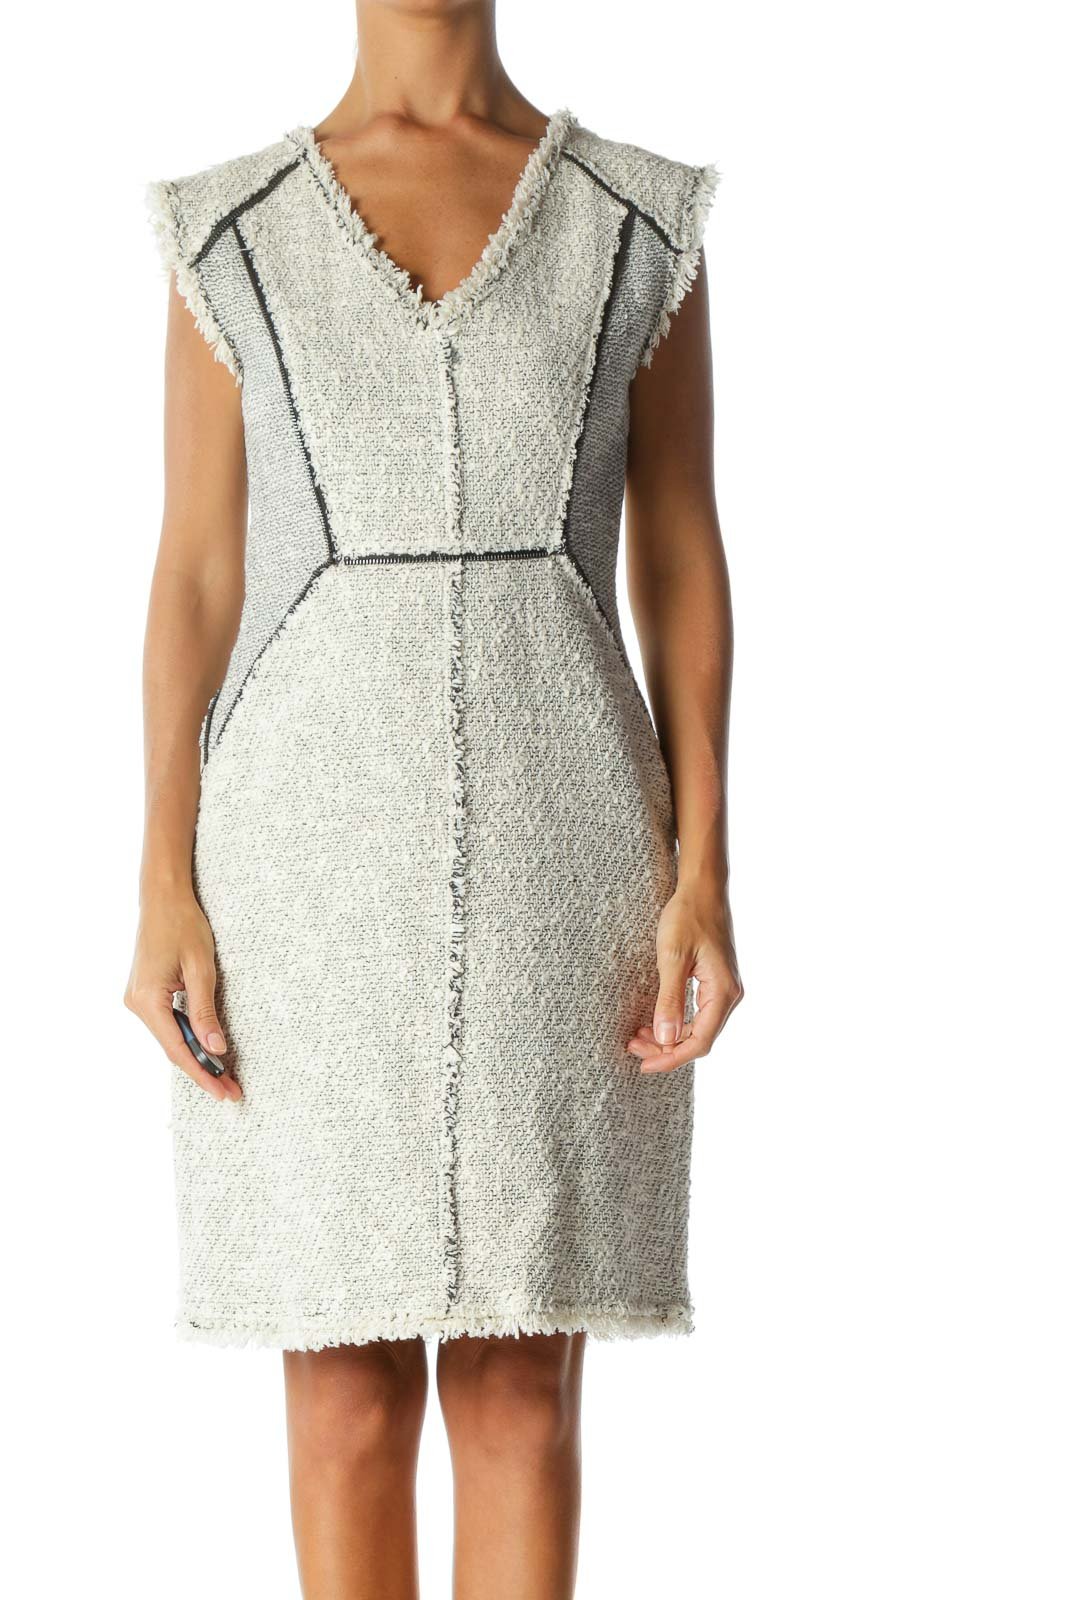 Cream & Gray Tweed Zipper-Piping Fringed-Hem Sleeveless Day Dress